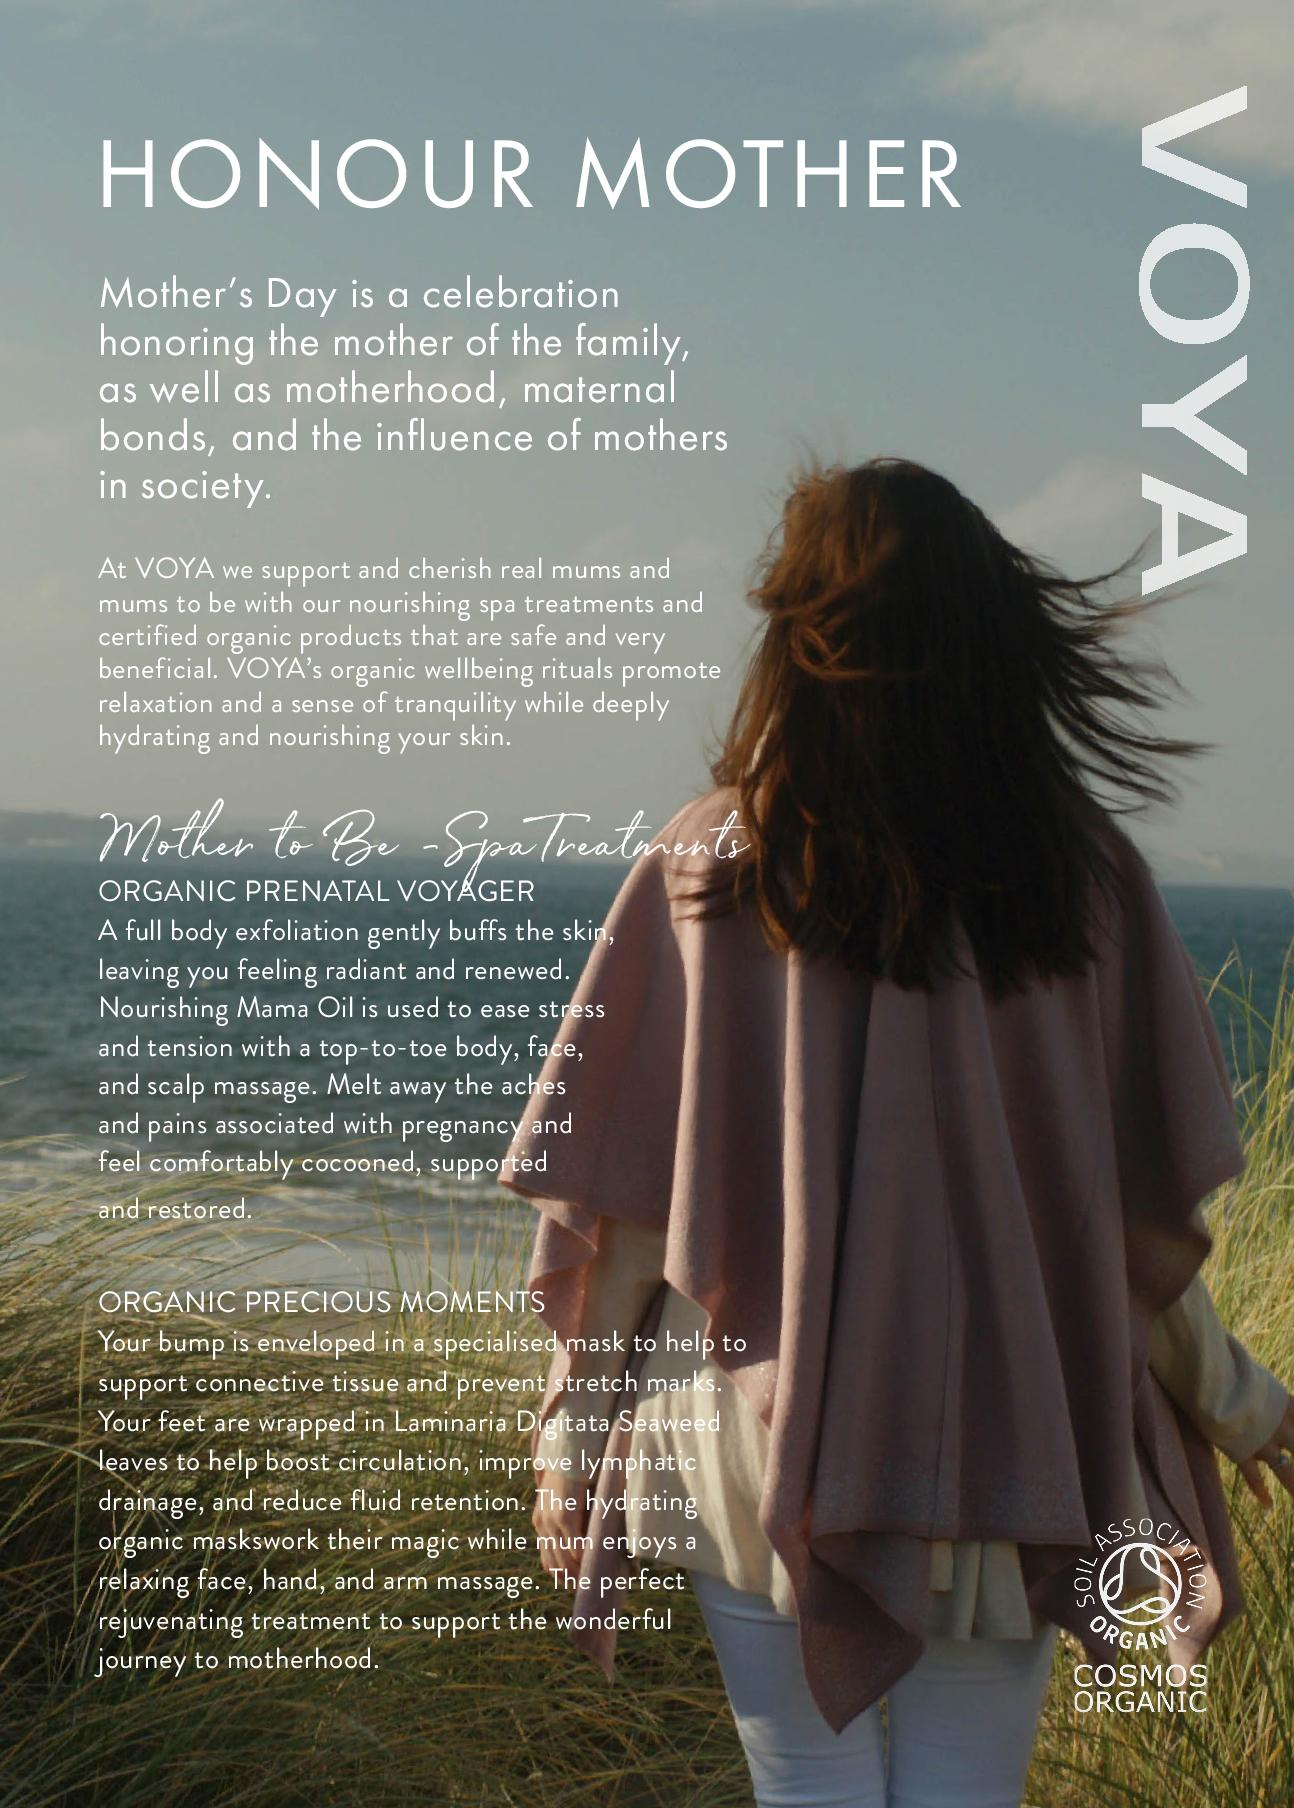 VOYA HONOUR MOTHERS IN MARCH - MOTHERS DAY GIFTS